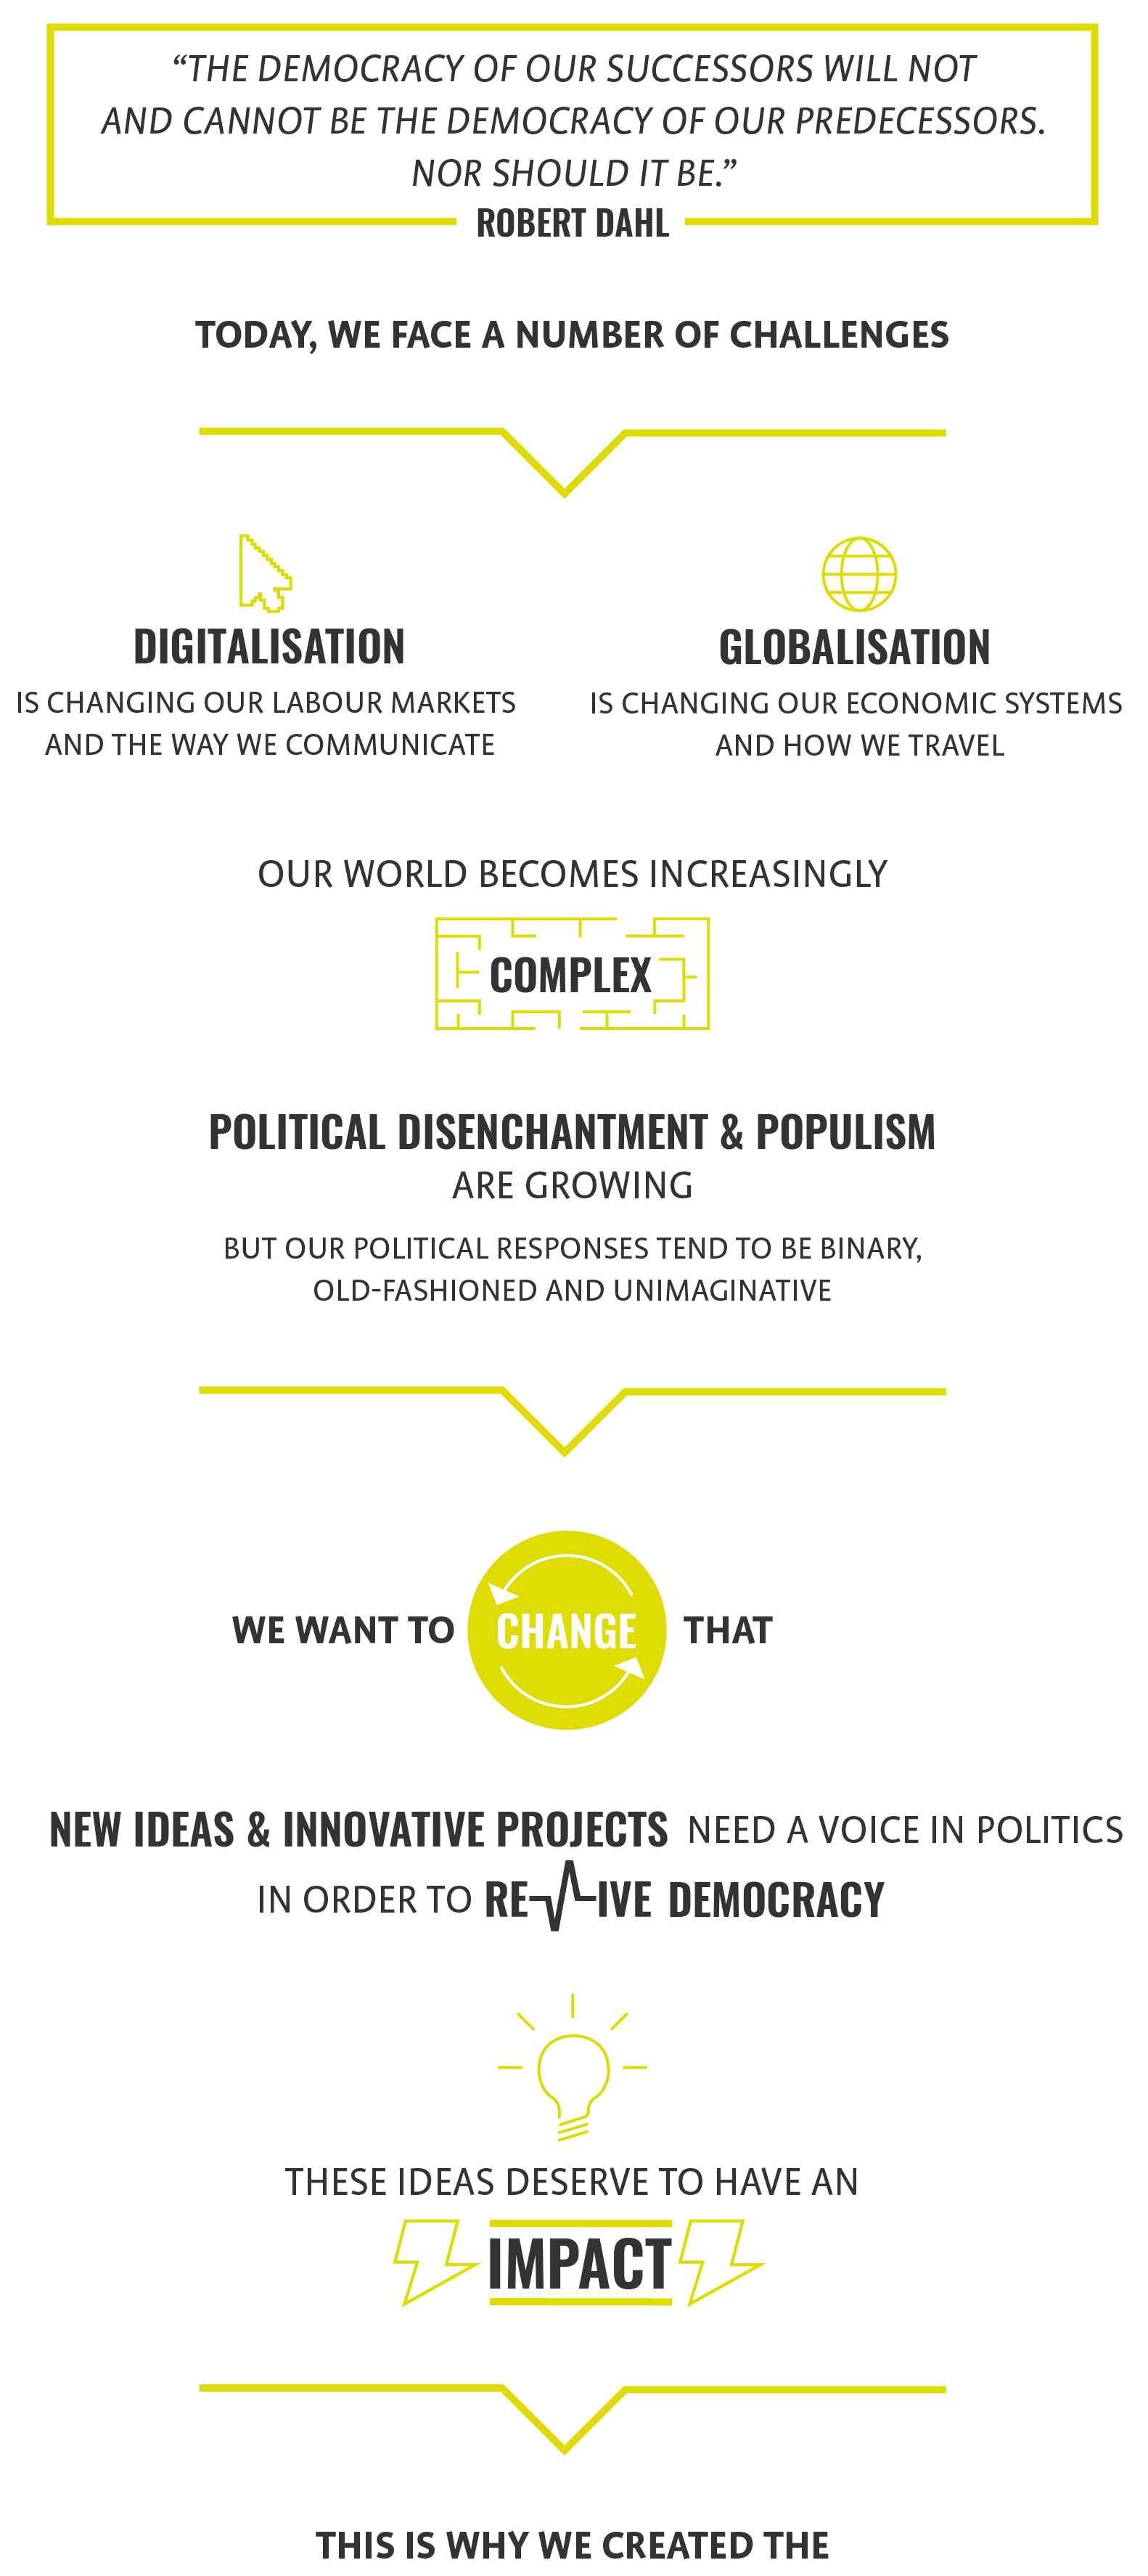 The Democracy Lab is the platform for democratic innovation by the Berlin think tank Das Progressive Zentrum. We develop ideas and projects to help to renew democracy. Please visit our page to access publications on, e.g. structural reforms, digital innovations and representation.